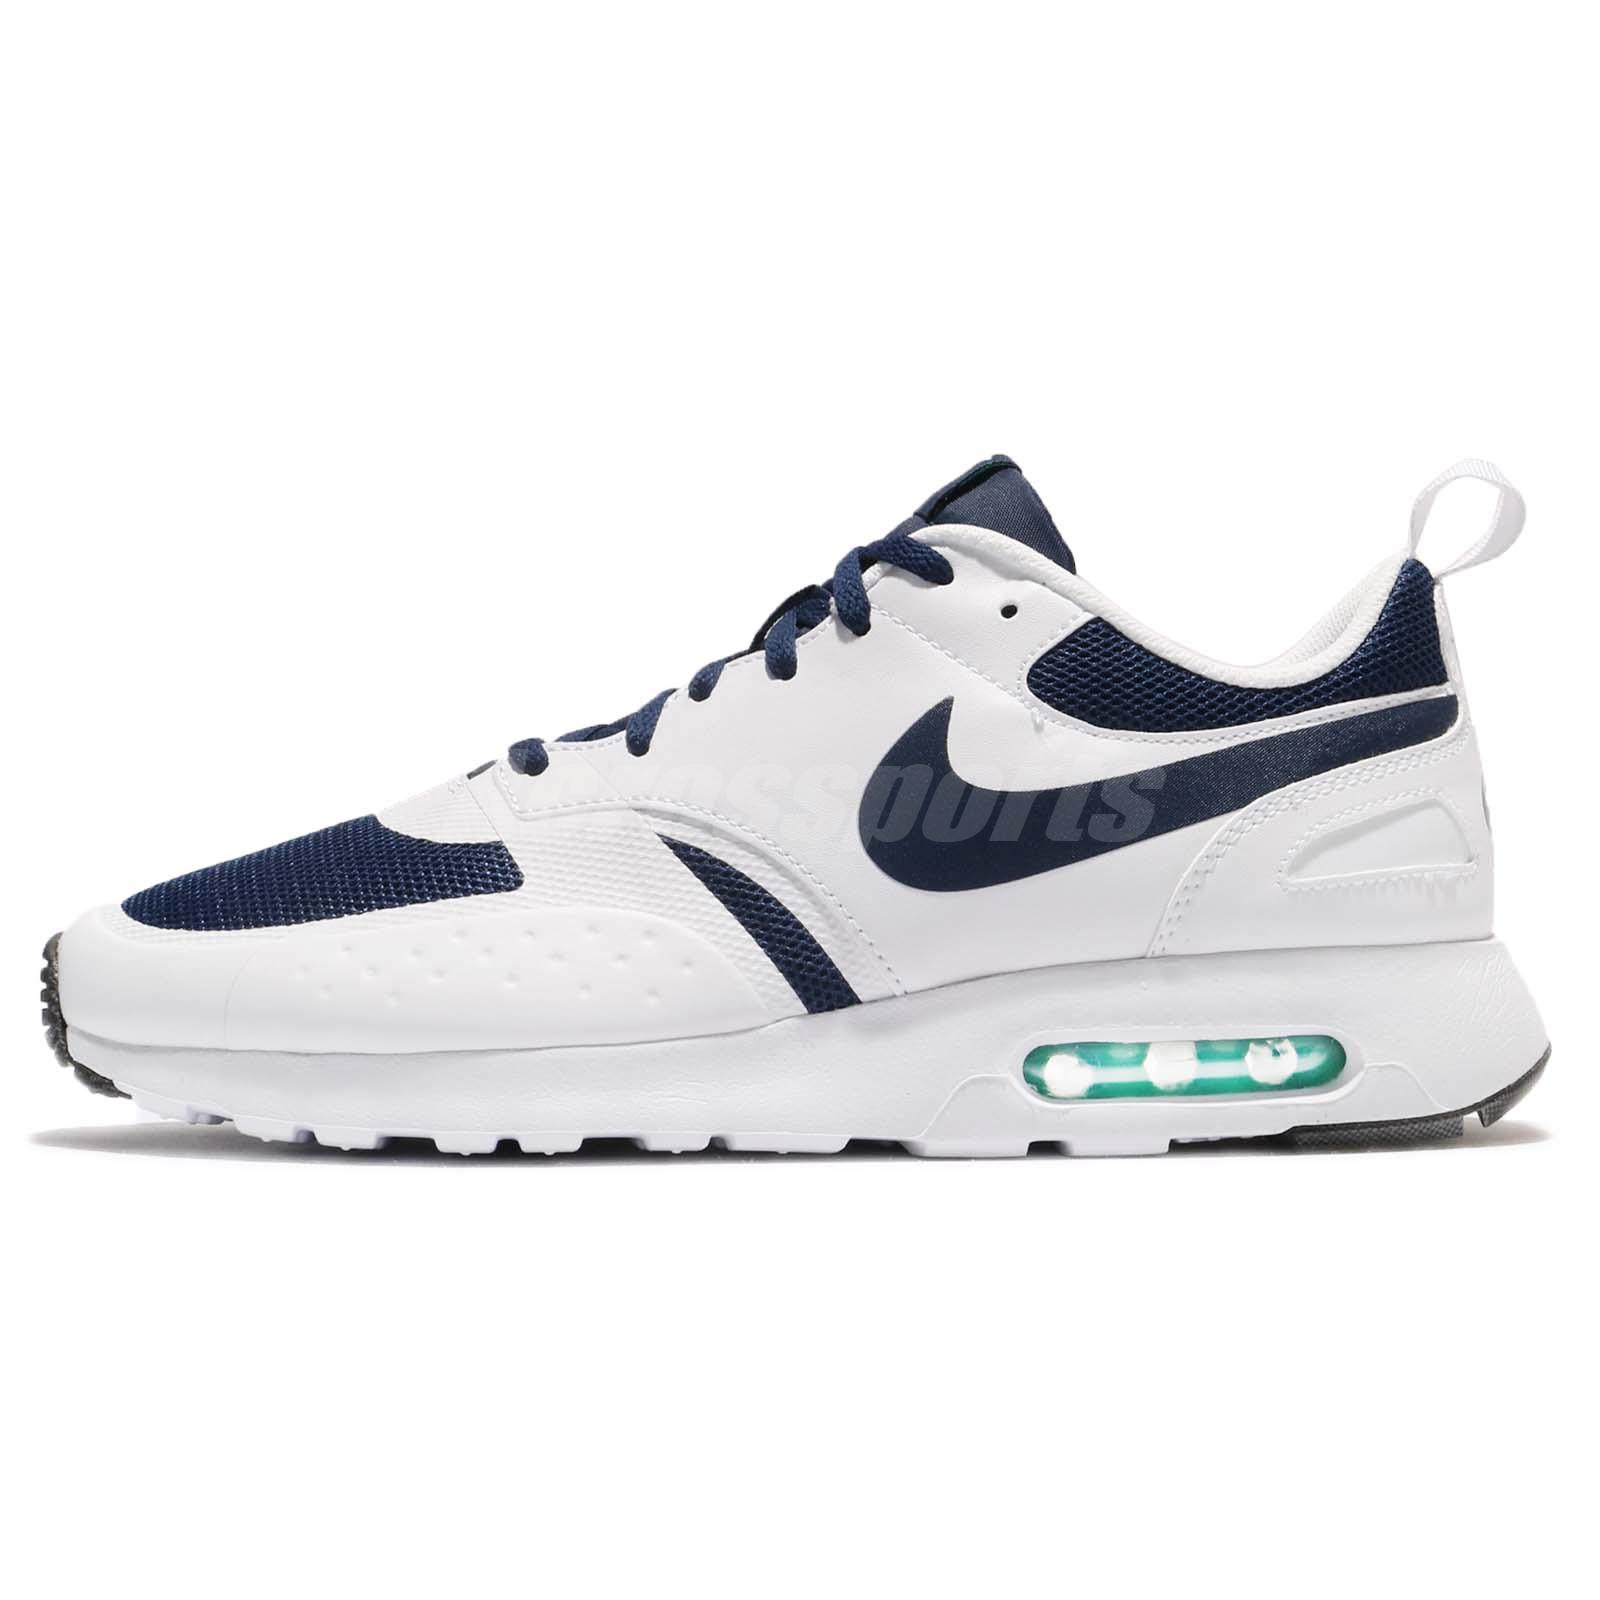 Cross Country Training Shoes Nike